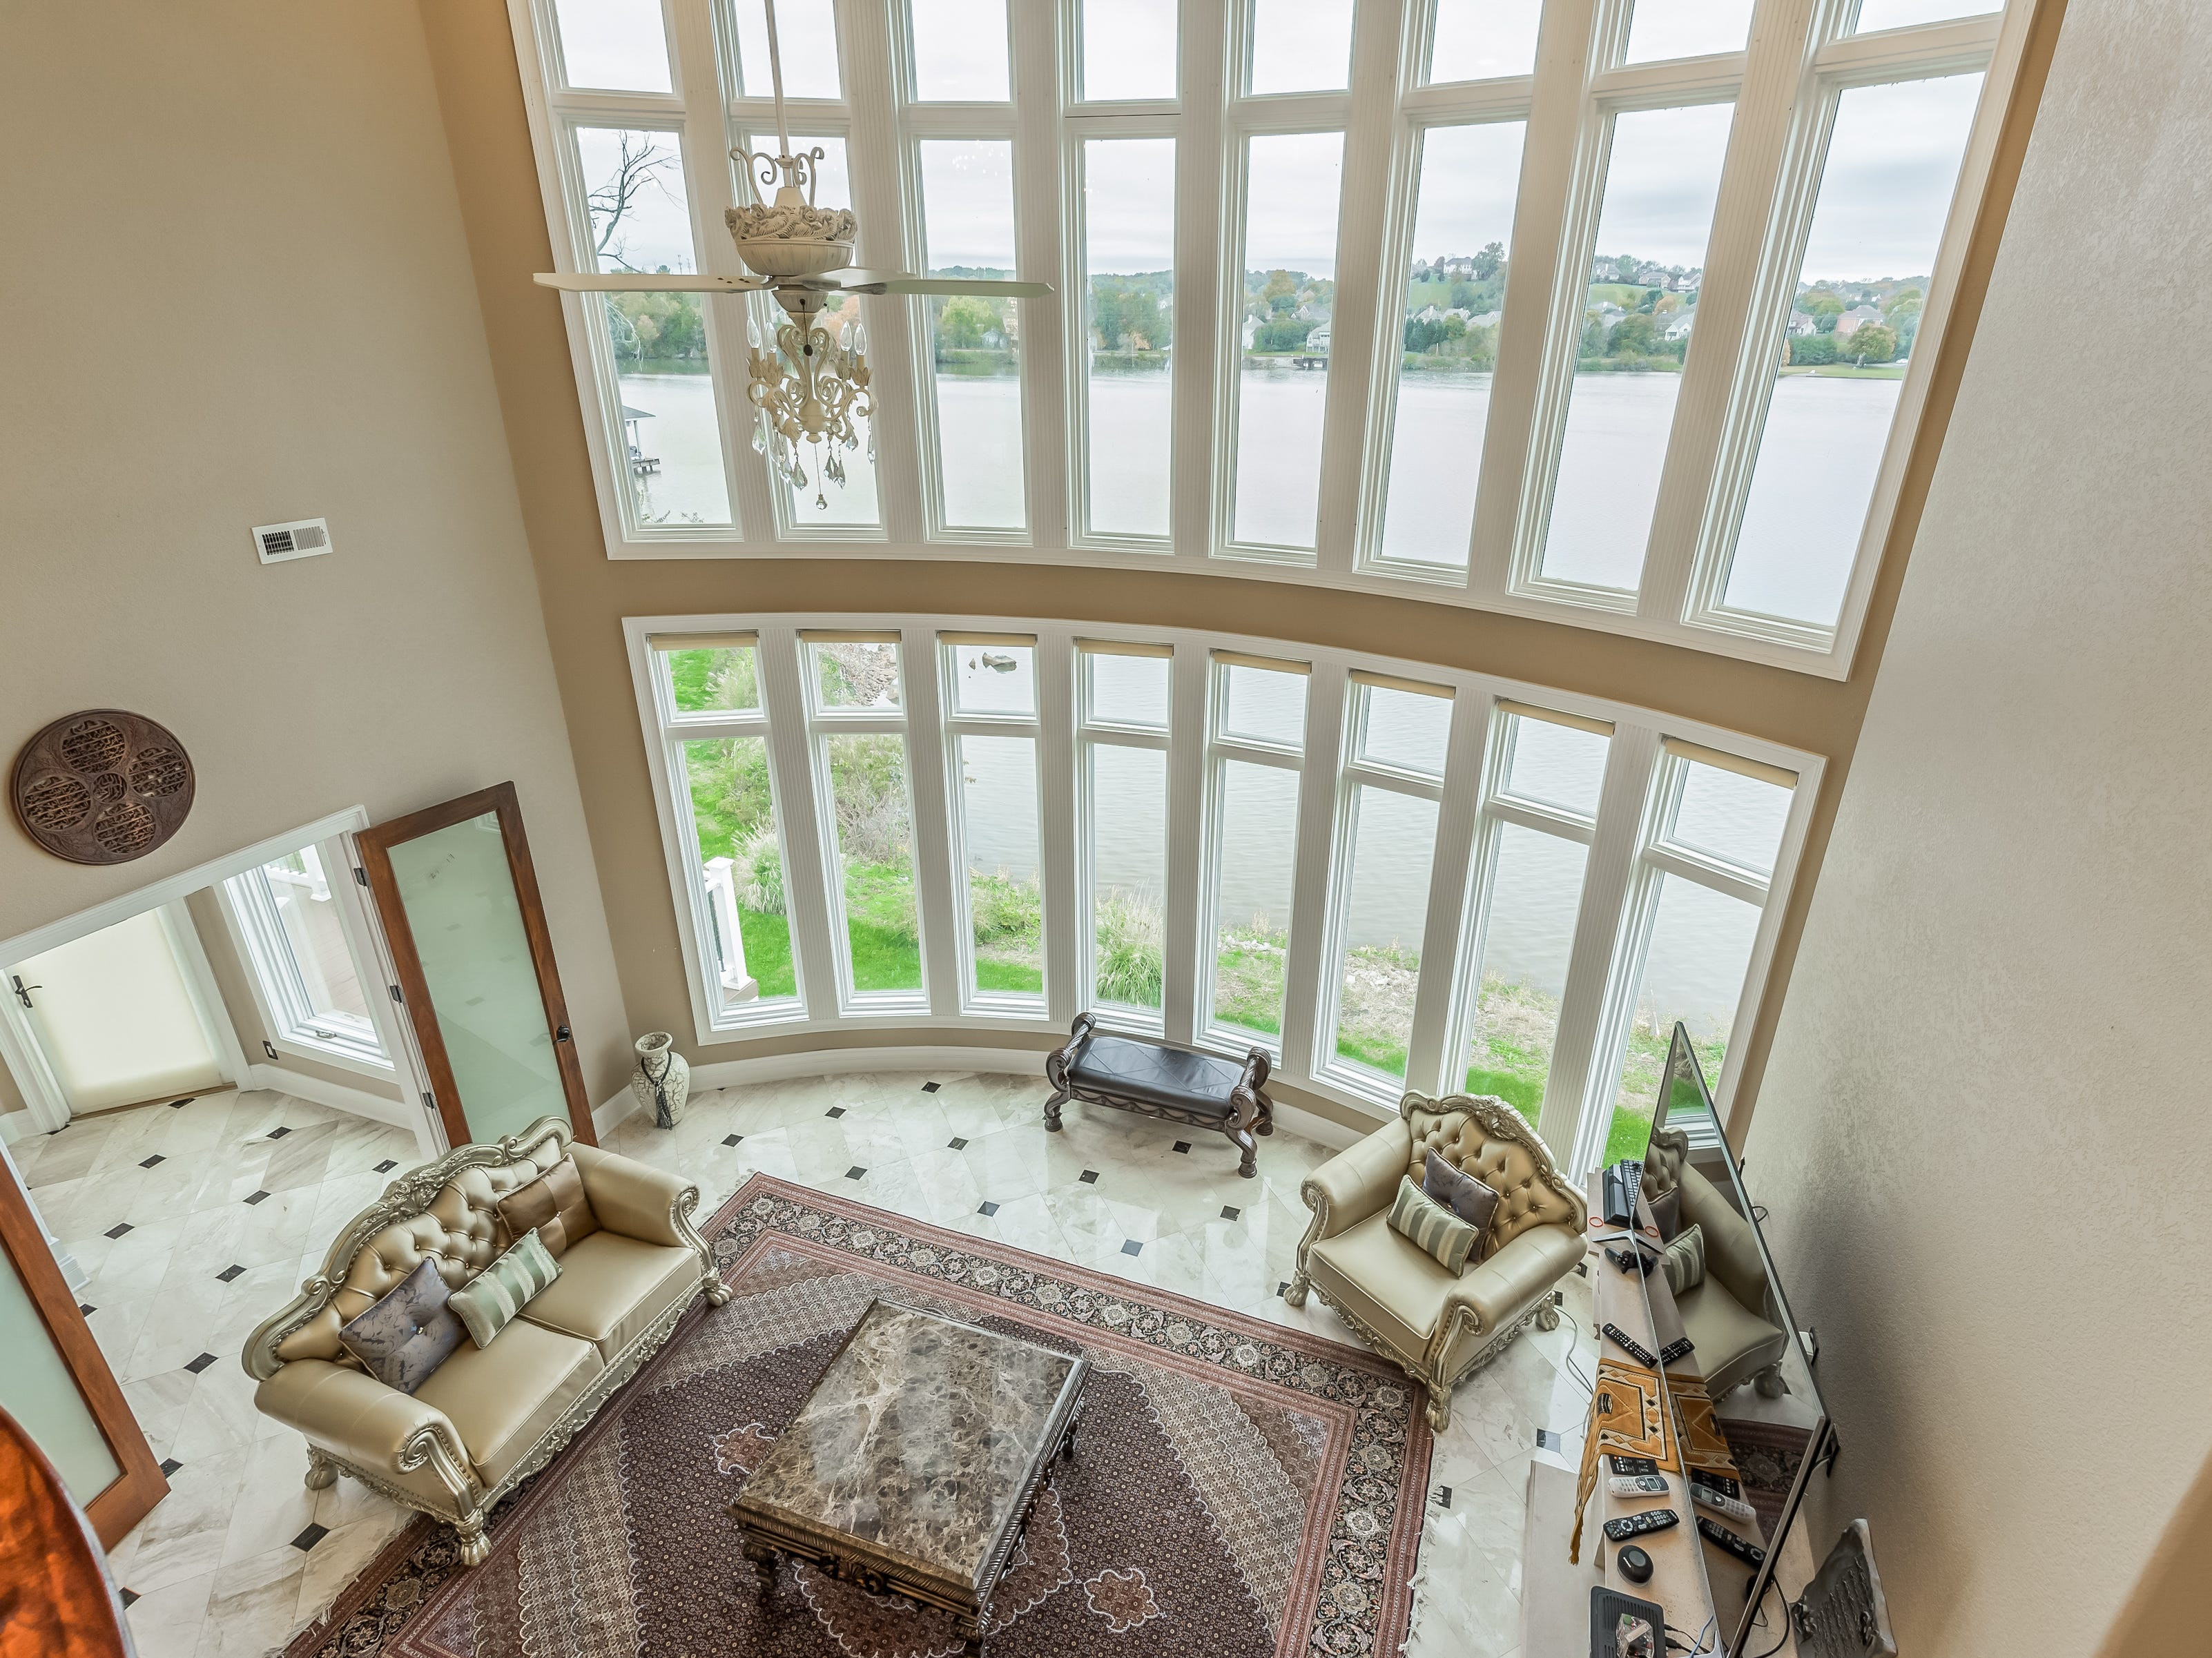 The view out on Fort Loudoun Lake from 1439 Charlottesville Blvd in Farragut. The mansion is listed for $1,995,000.